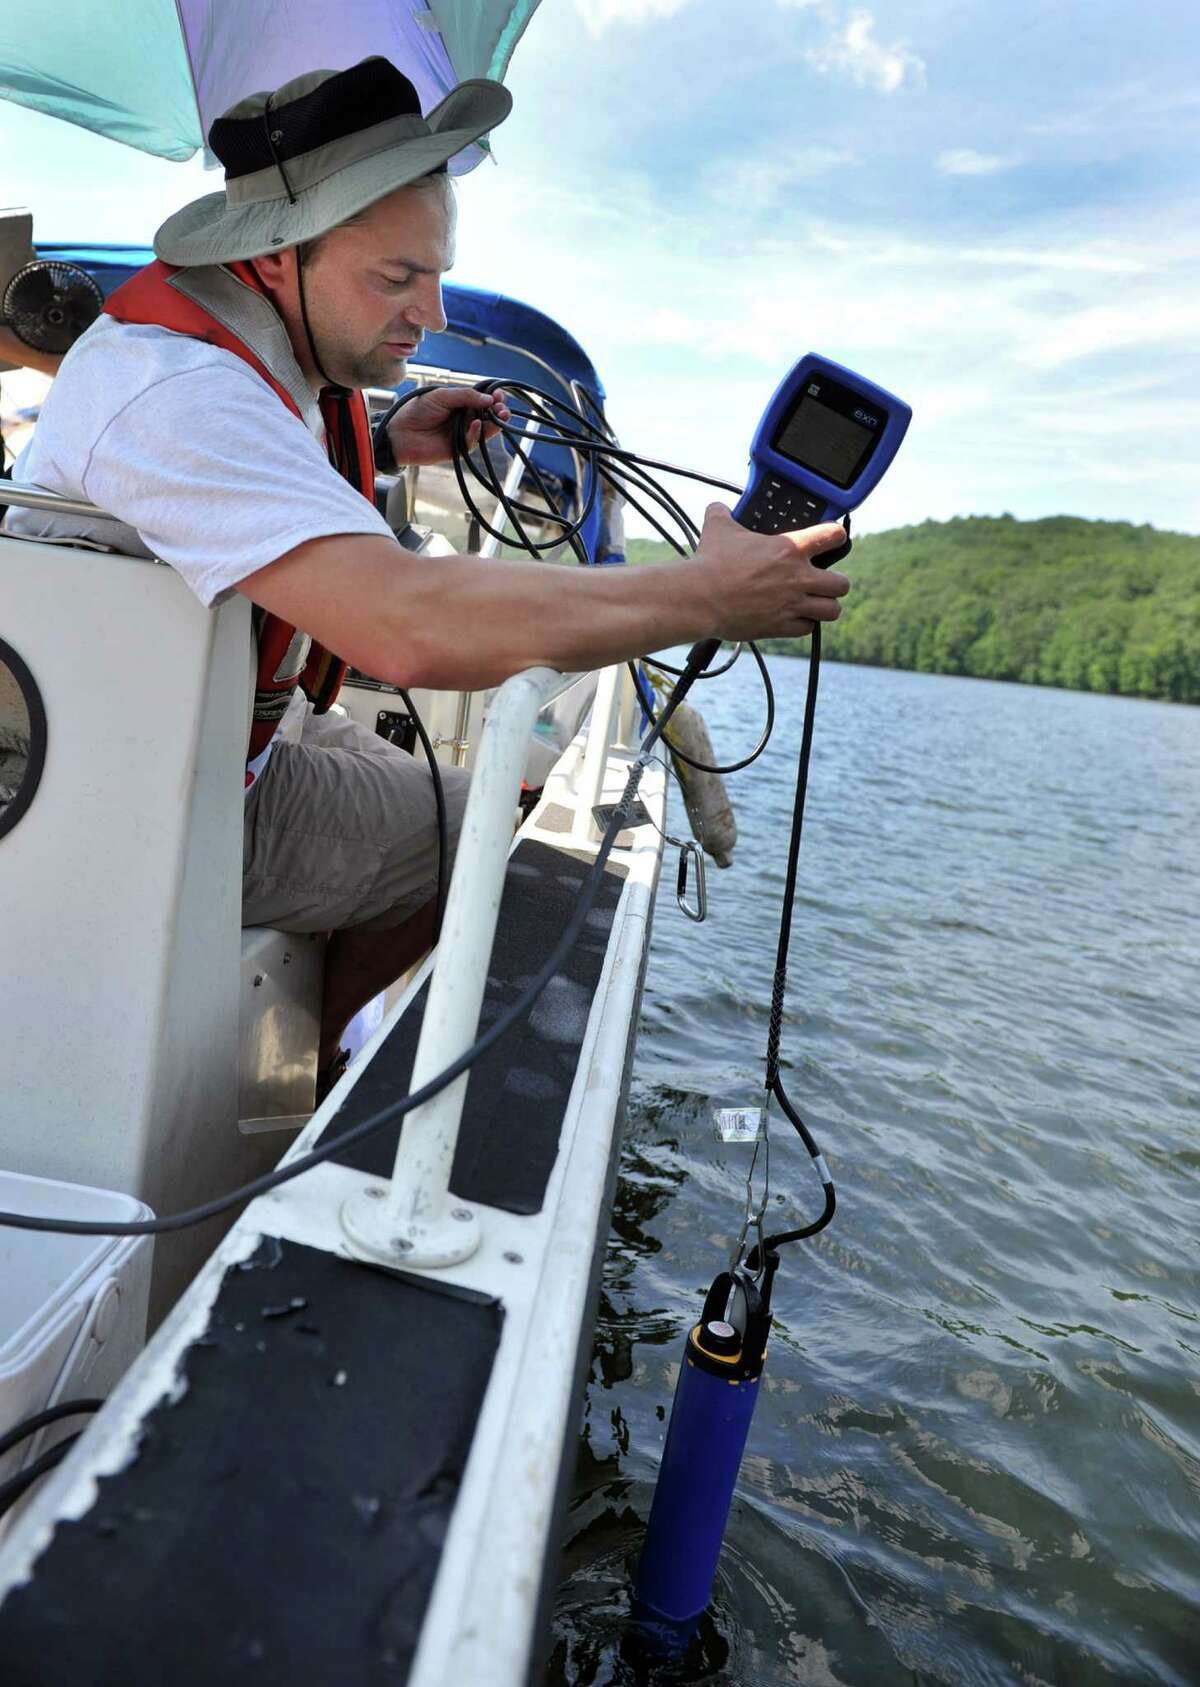 Joe Martin with US Geological Survey drops an instrument into the waters of Lake Lillinonah to test the water quality, Monday, July 15, 2013.